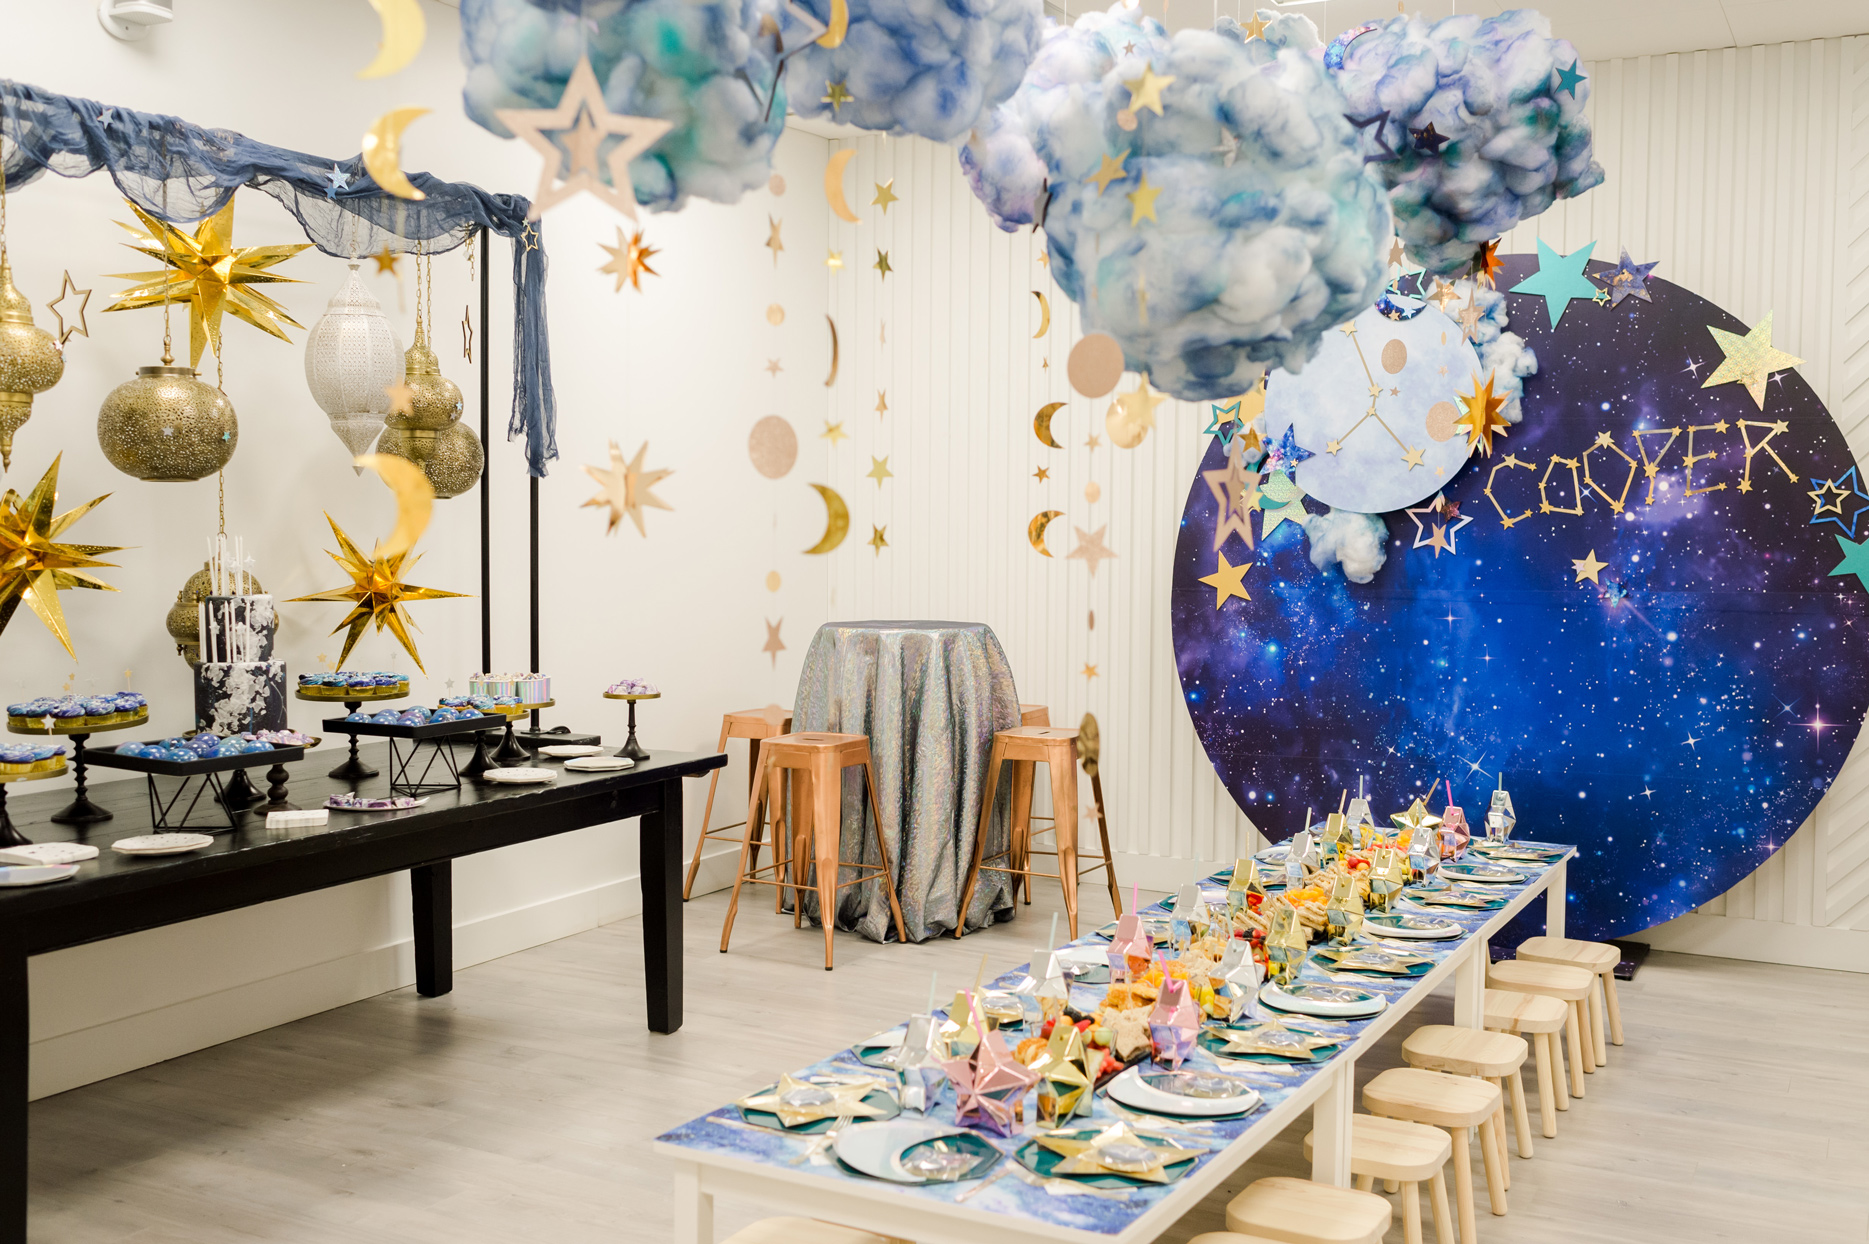 astrology themed birthday party decor